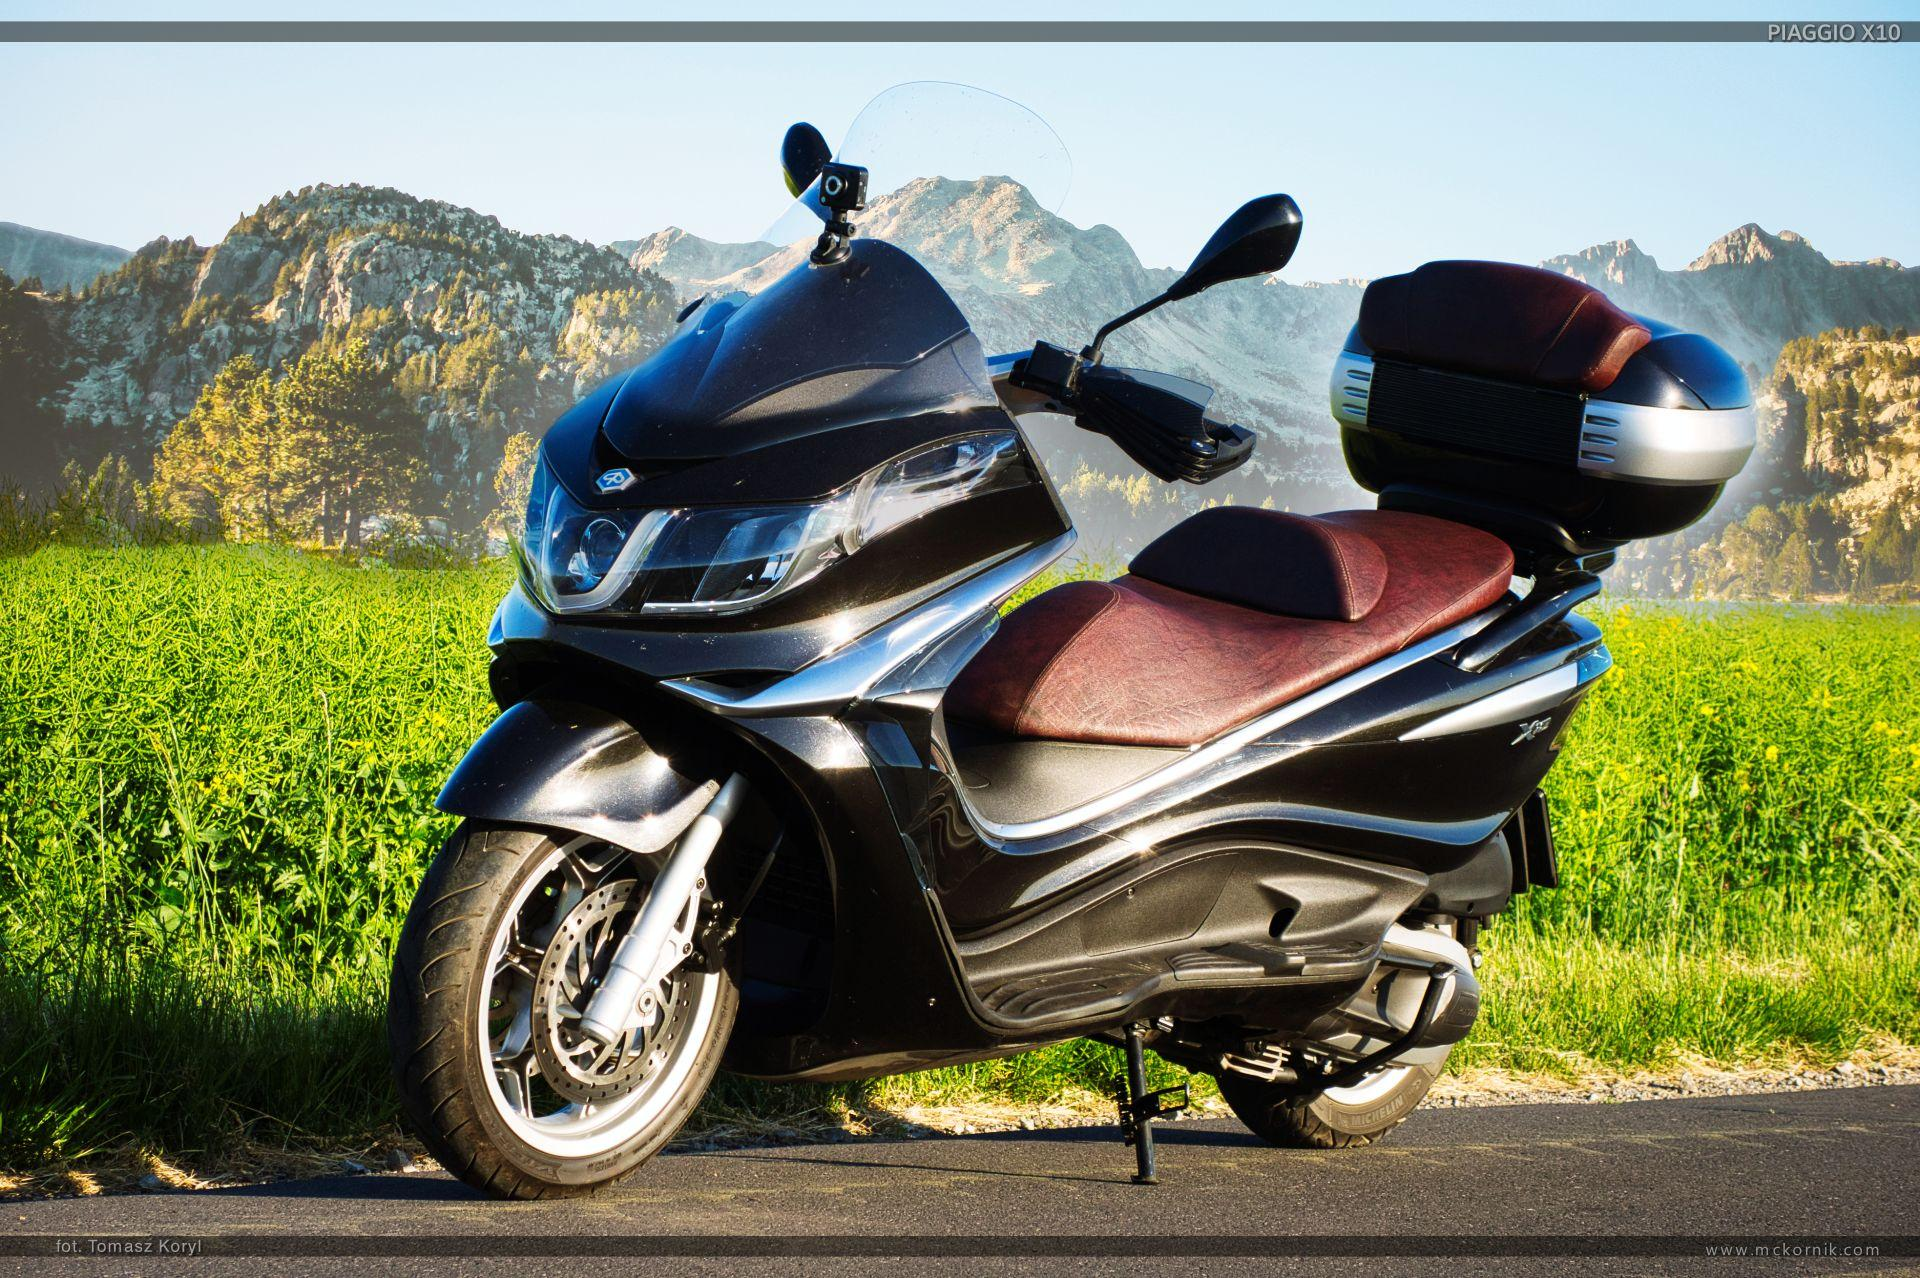 cooter piaggio x10 350 motorcycle review photos wallpaper - mckornik.com - #scootertouring, #scooter, #scootertravel, #maxiscooter, #piaggio, #piaggioX10, #piaggio350